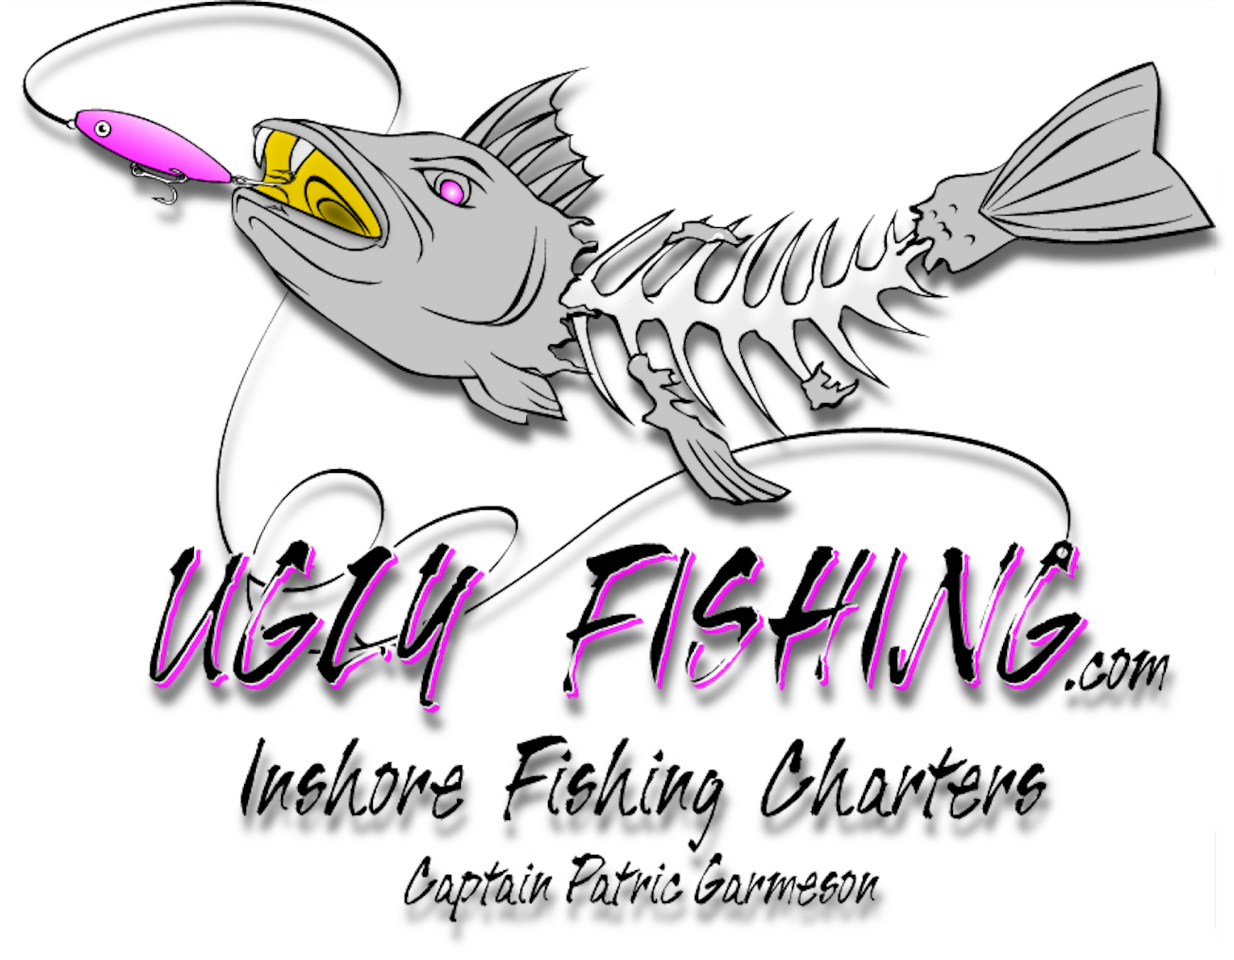 Ugly Fishing LLC